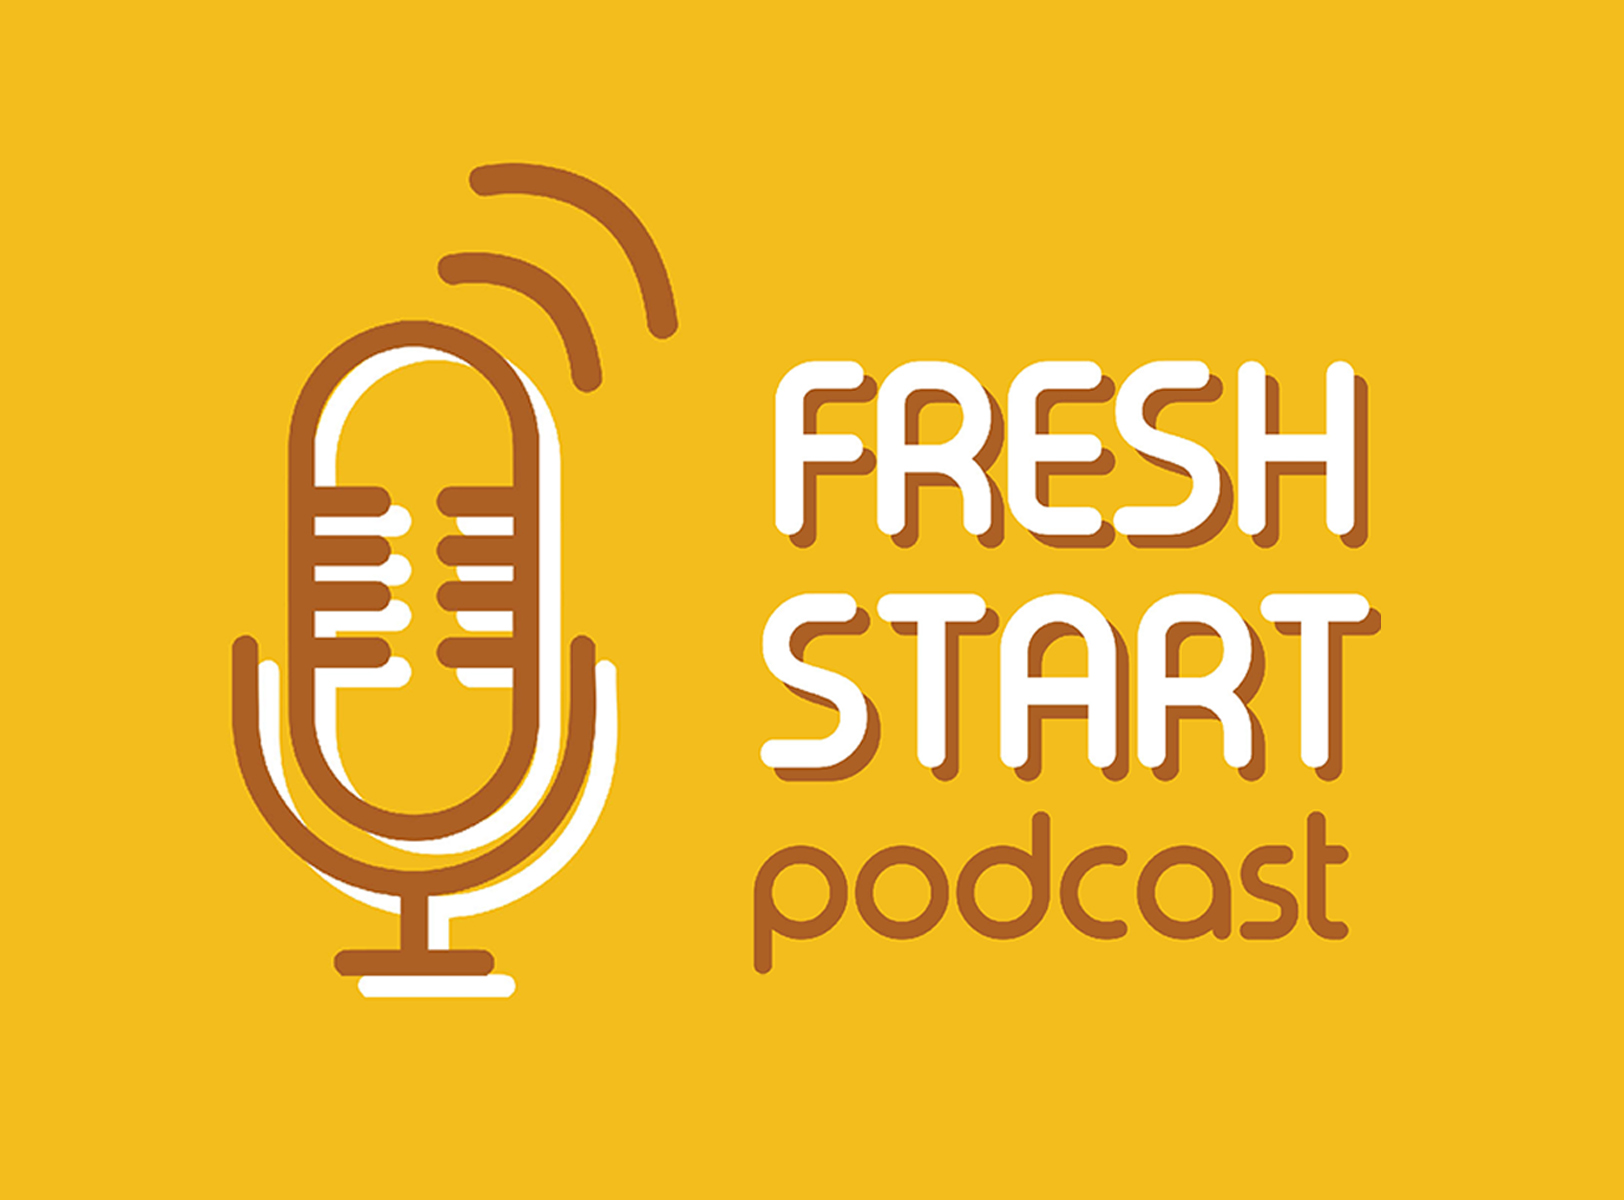 Fresh Start: Podcast News (6/25/2019 Tue.)